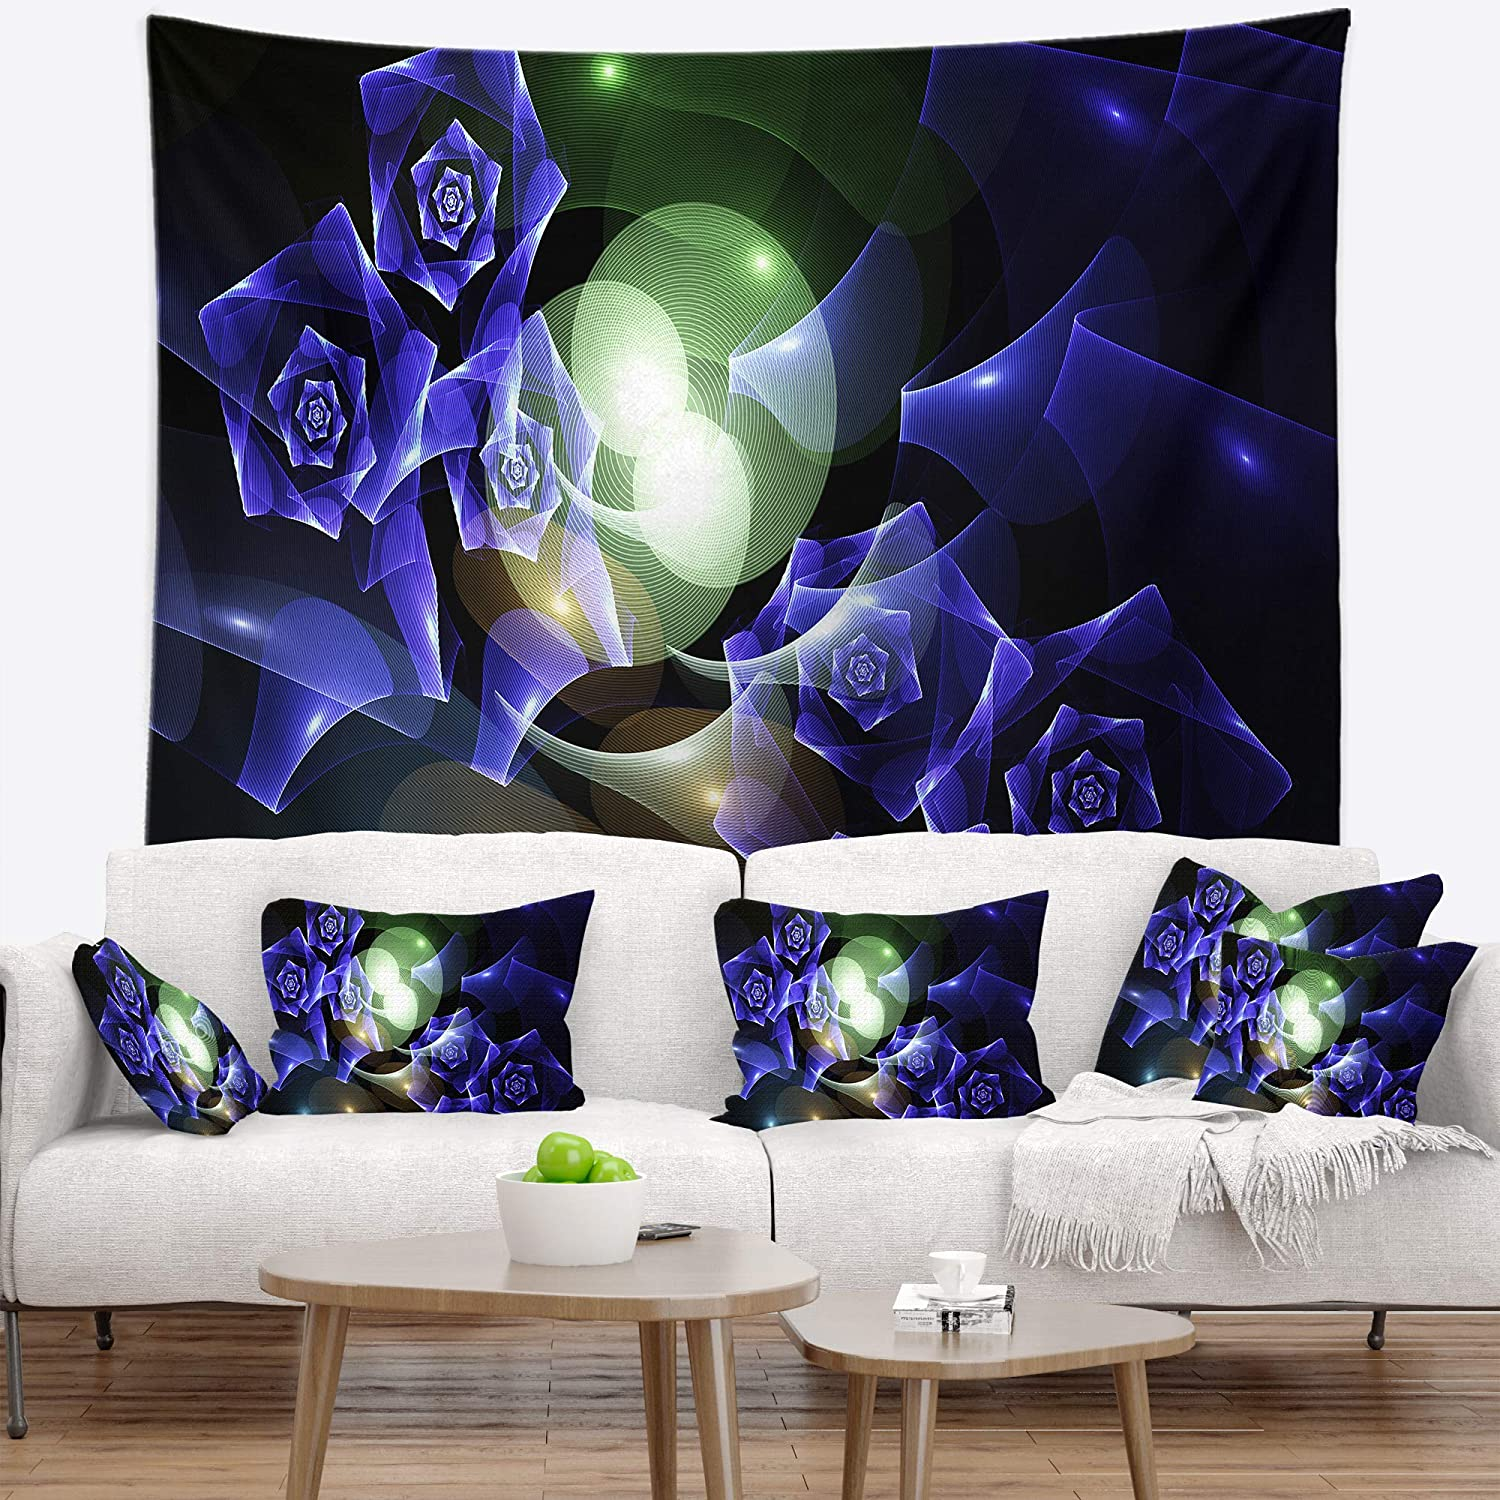 x Large Designart TAP16068-80-68 Blue Bouquet of Beautiful Roses Abstract Tapestry Blanket D/écor Wall Art for Home and Office 80 x 68